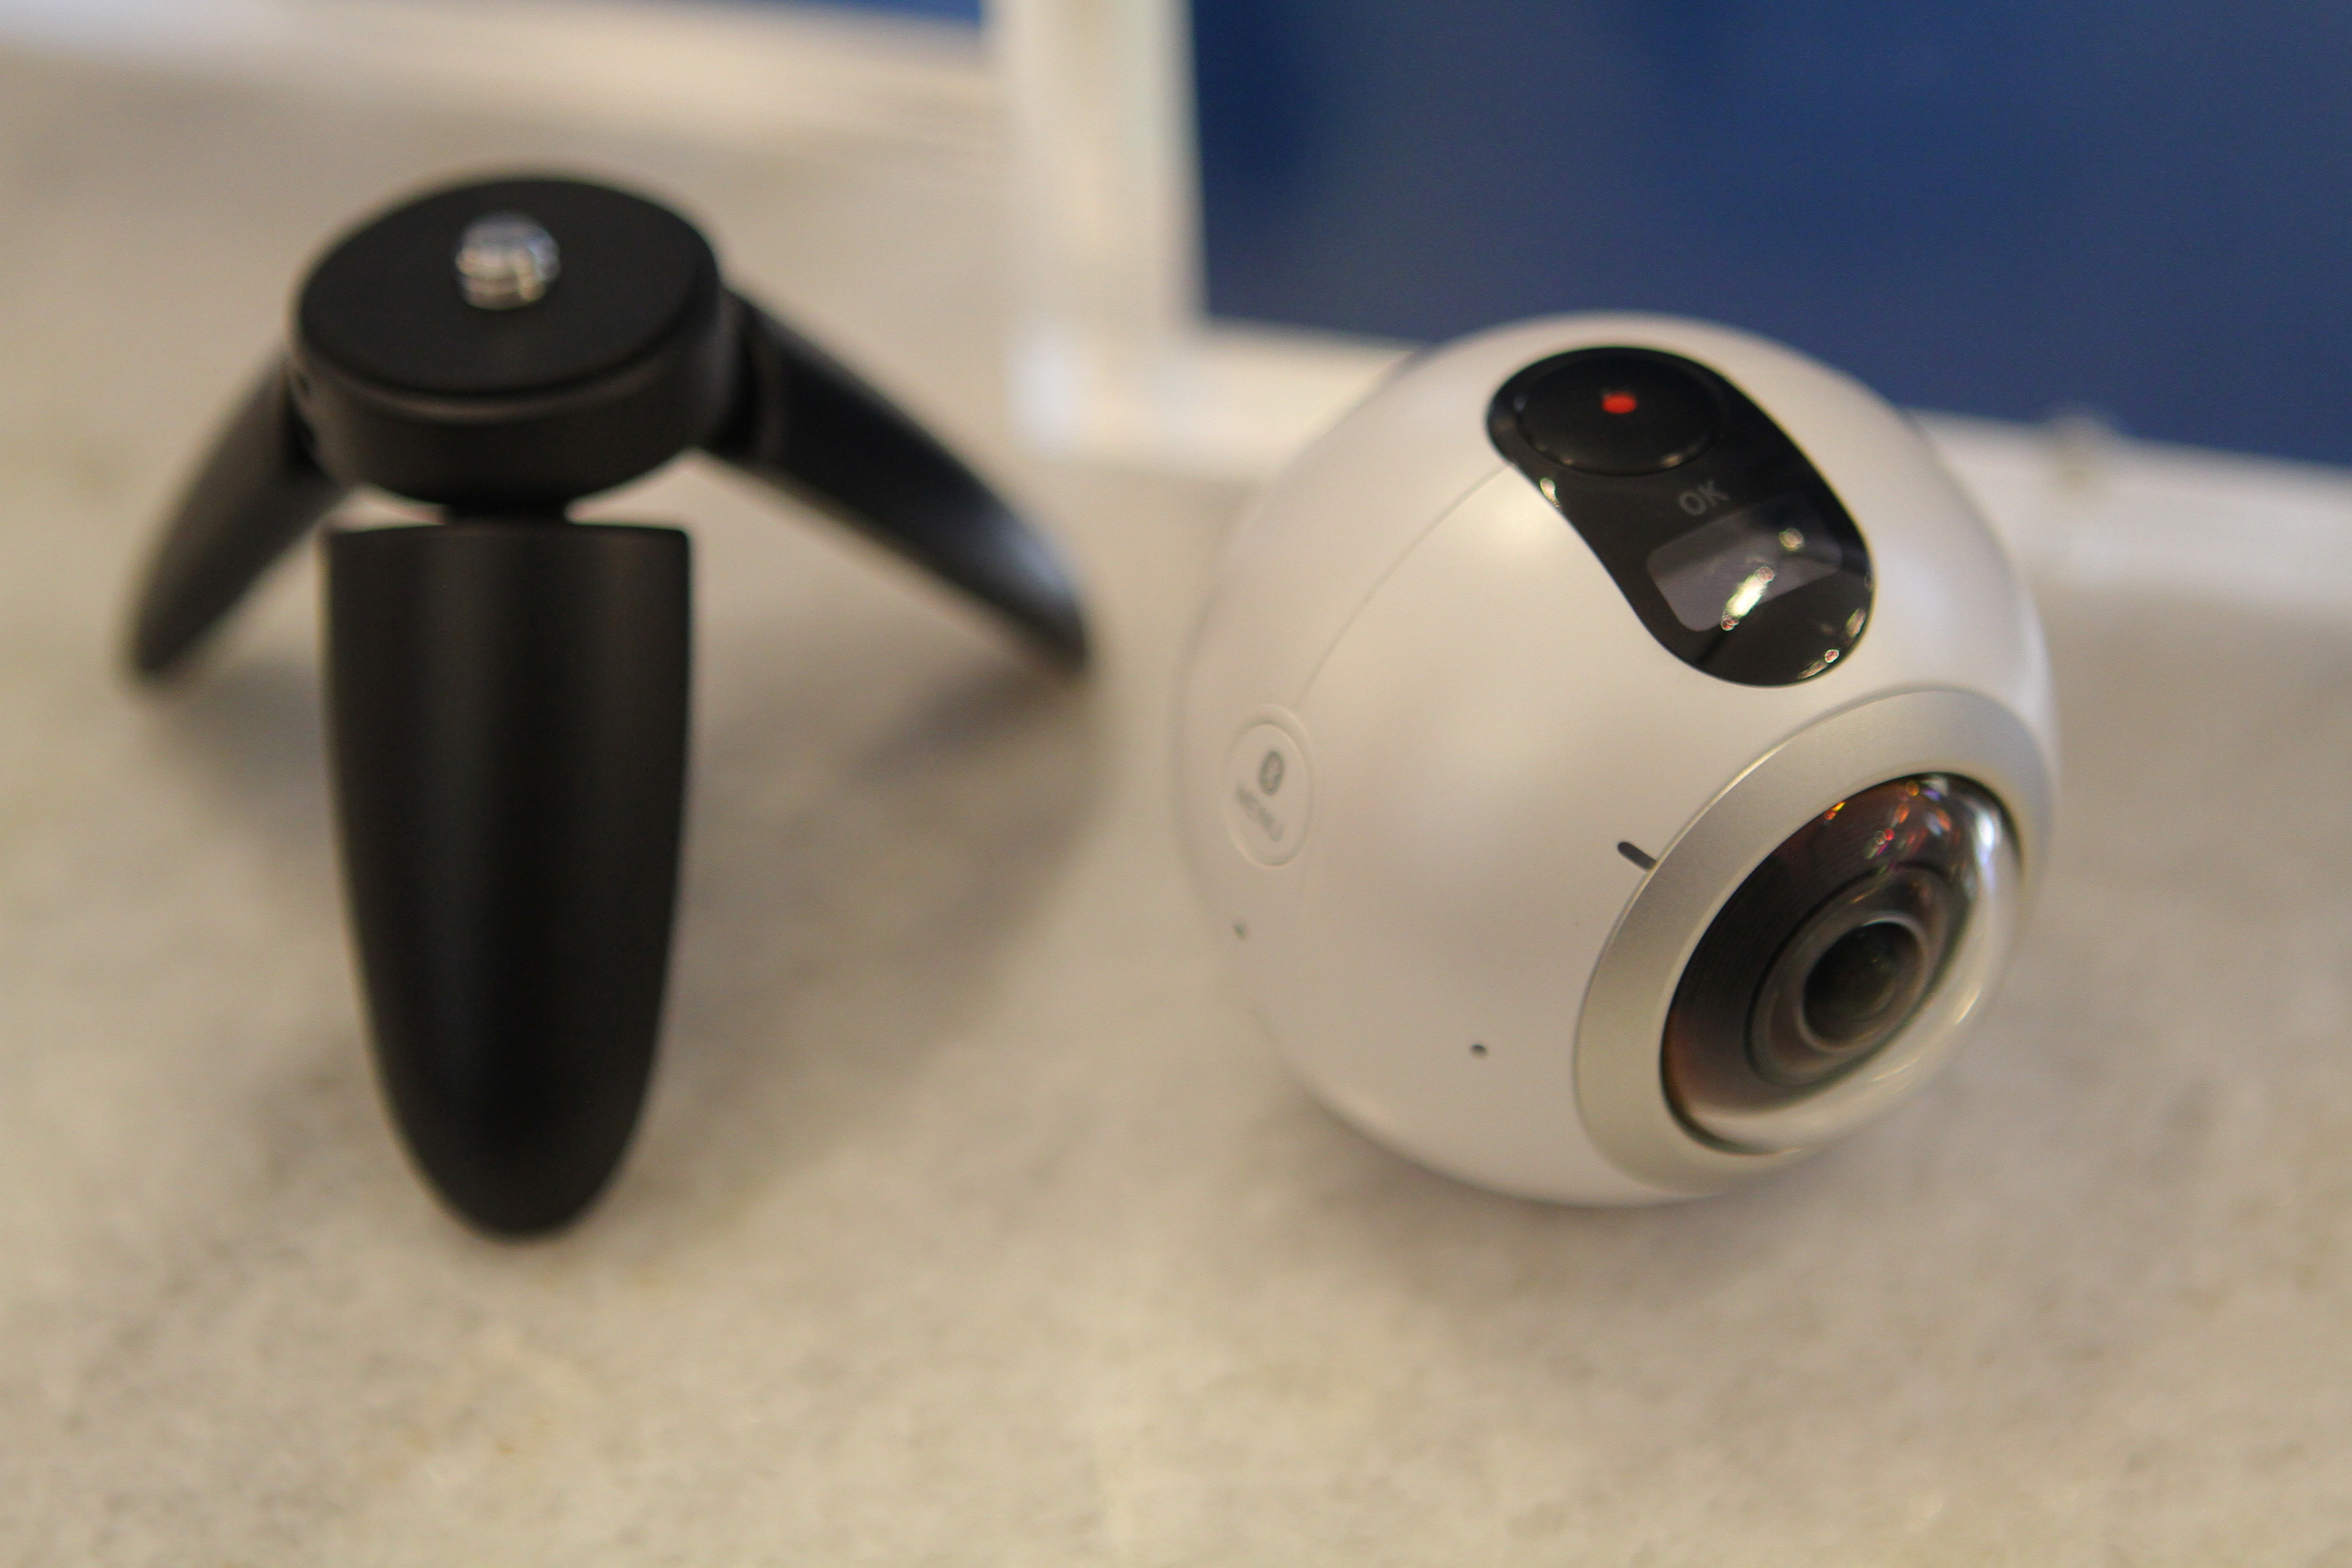 Samsung Gear 360 camera separated from its tripod mount.